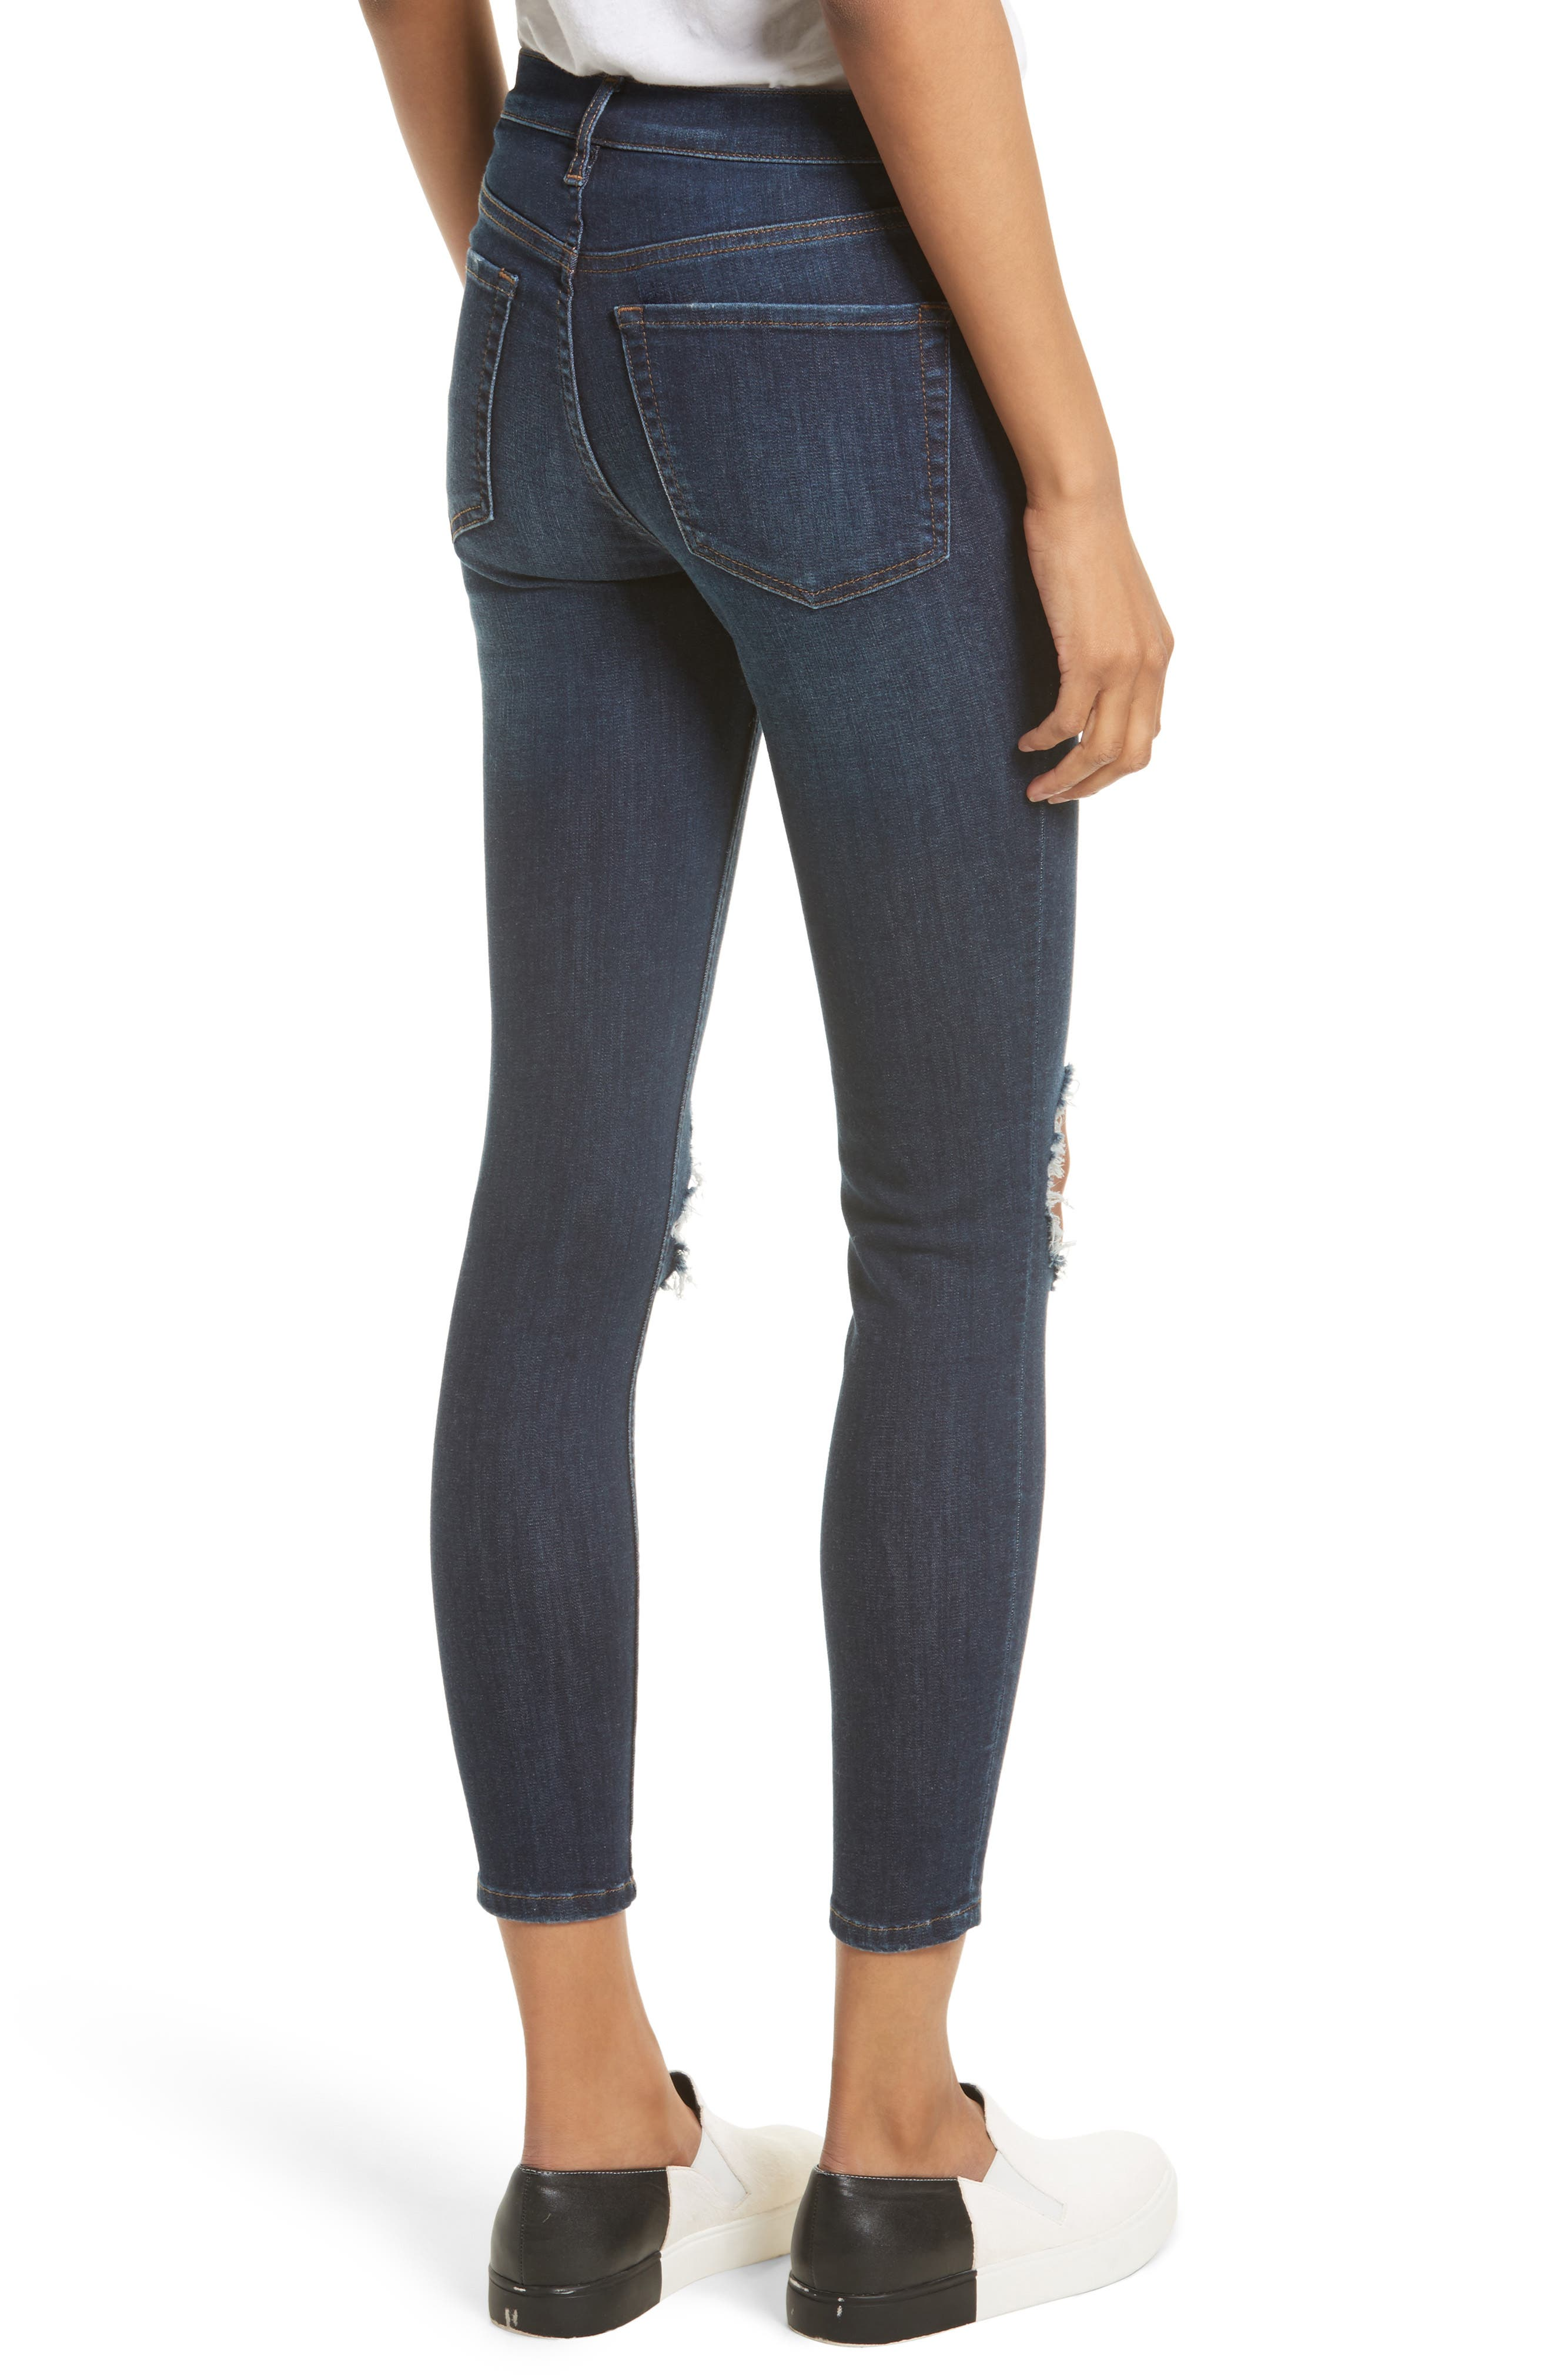 Alternate Image 3  - Free People High Rise Busted Knee Skinny Jeans (Dark Blue)